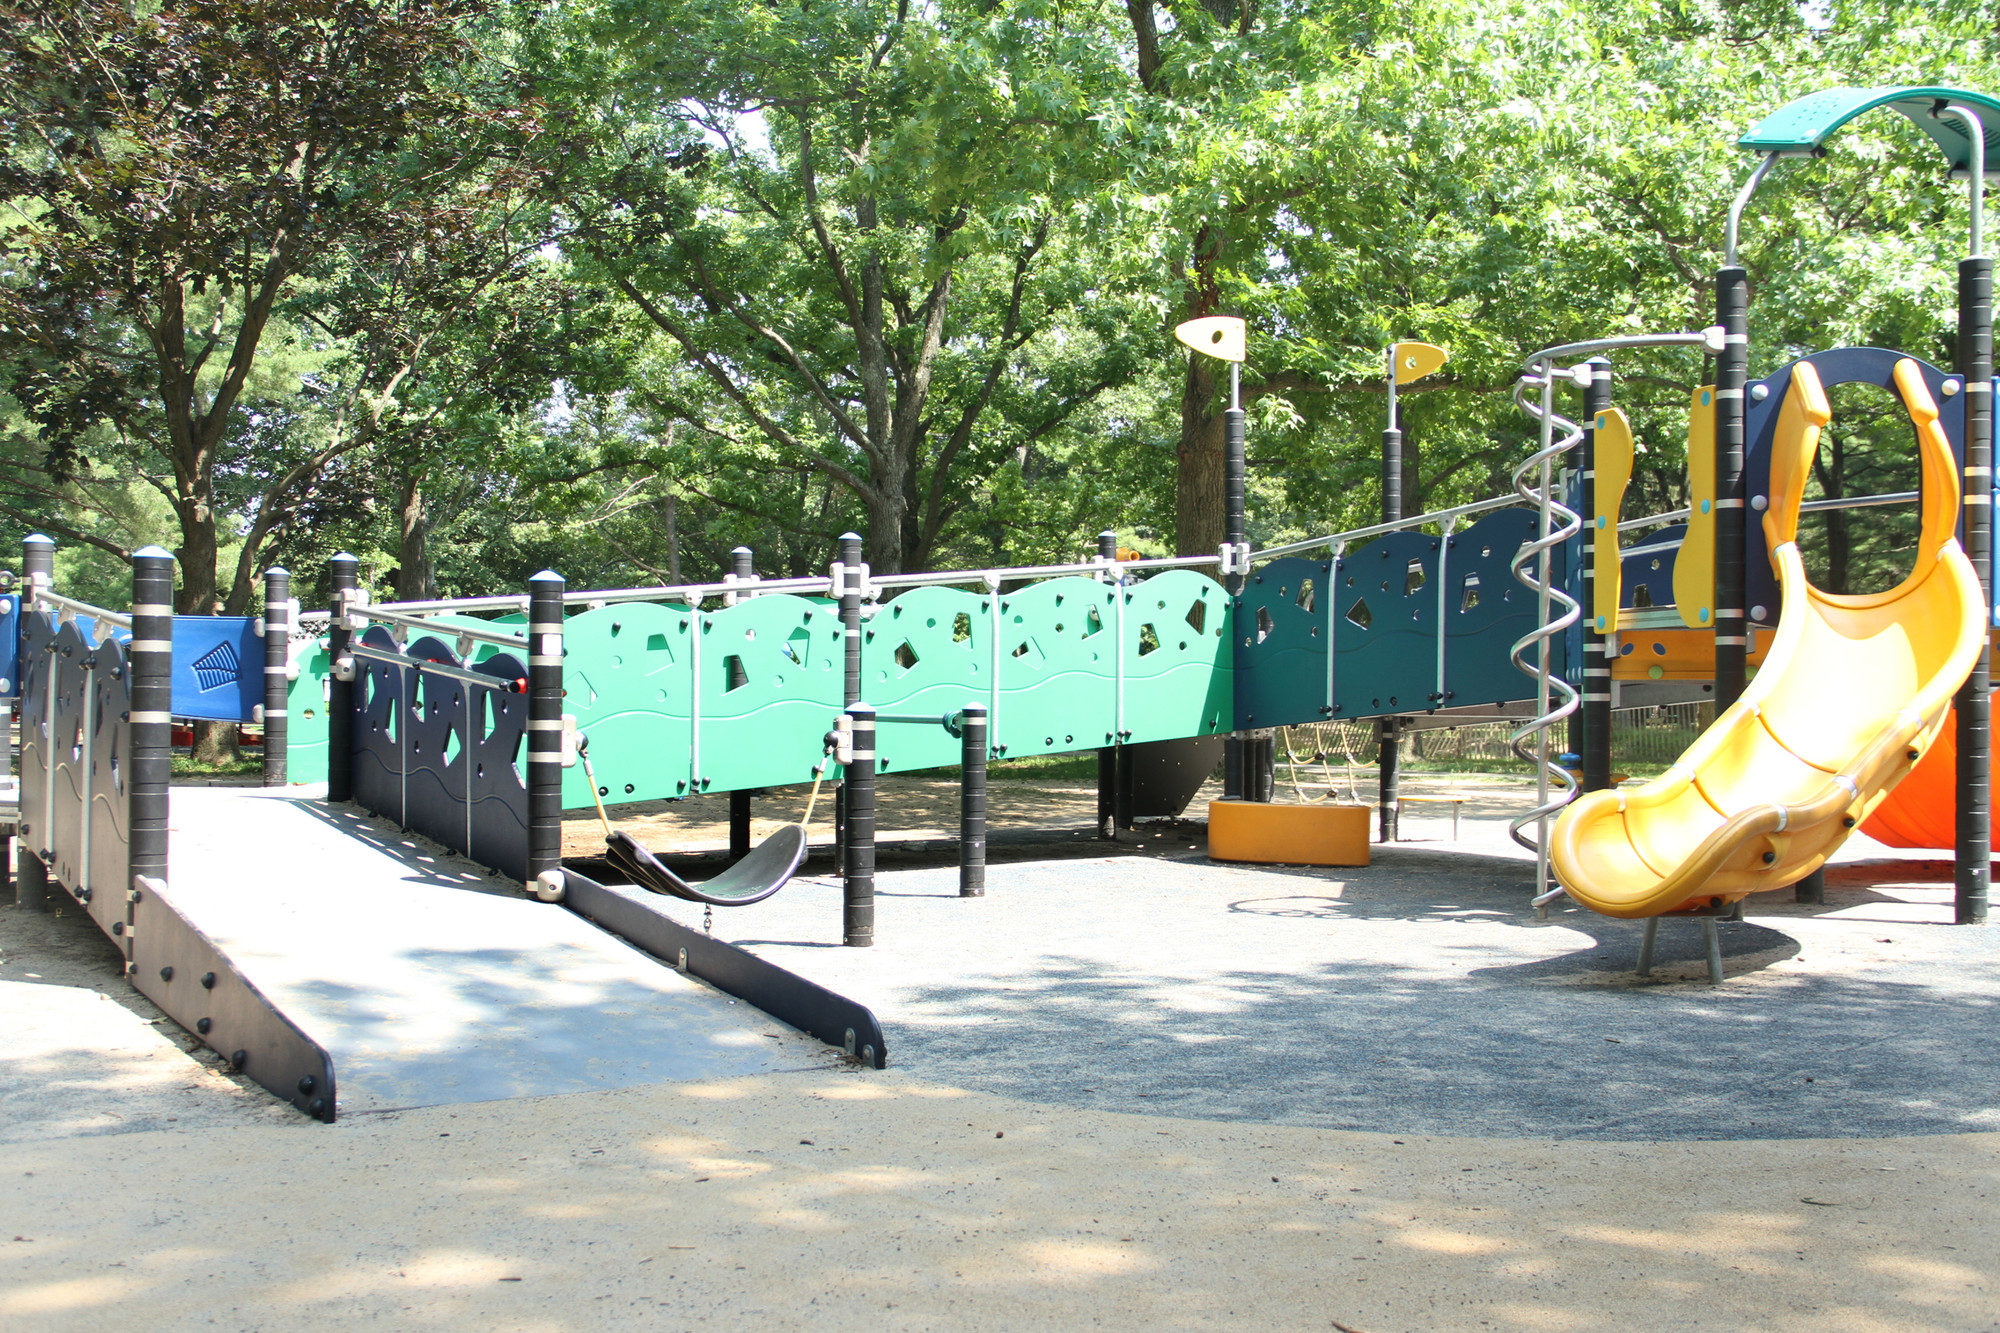 The playground features customized equipment that accommodates children who have special needs.